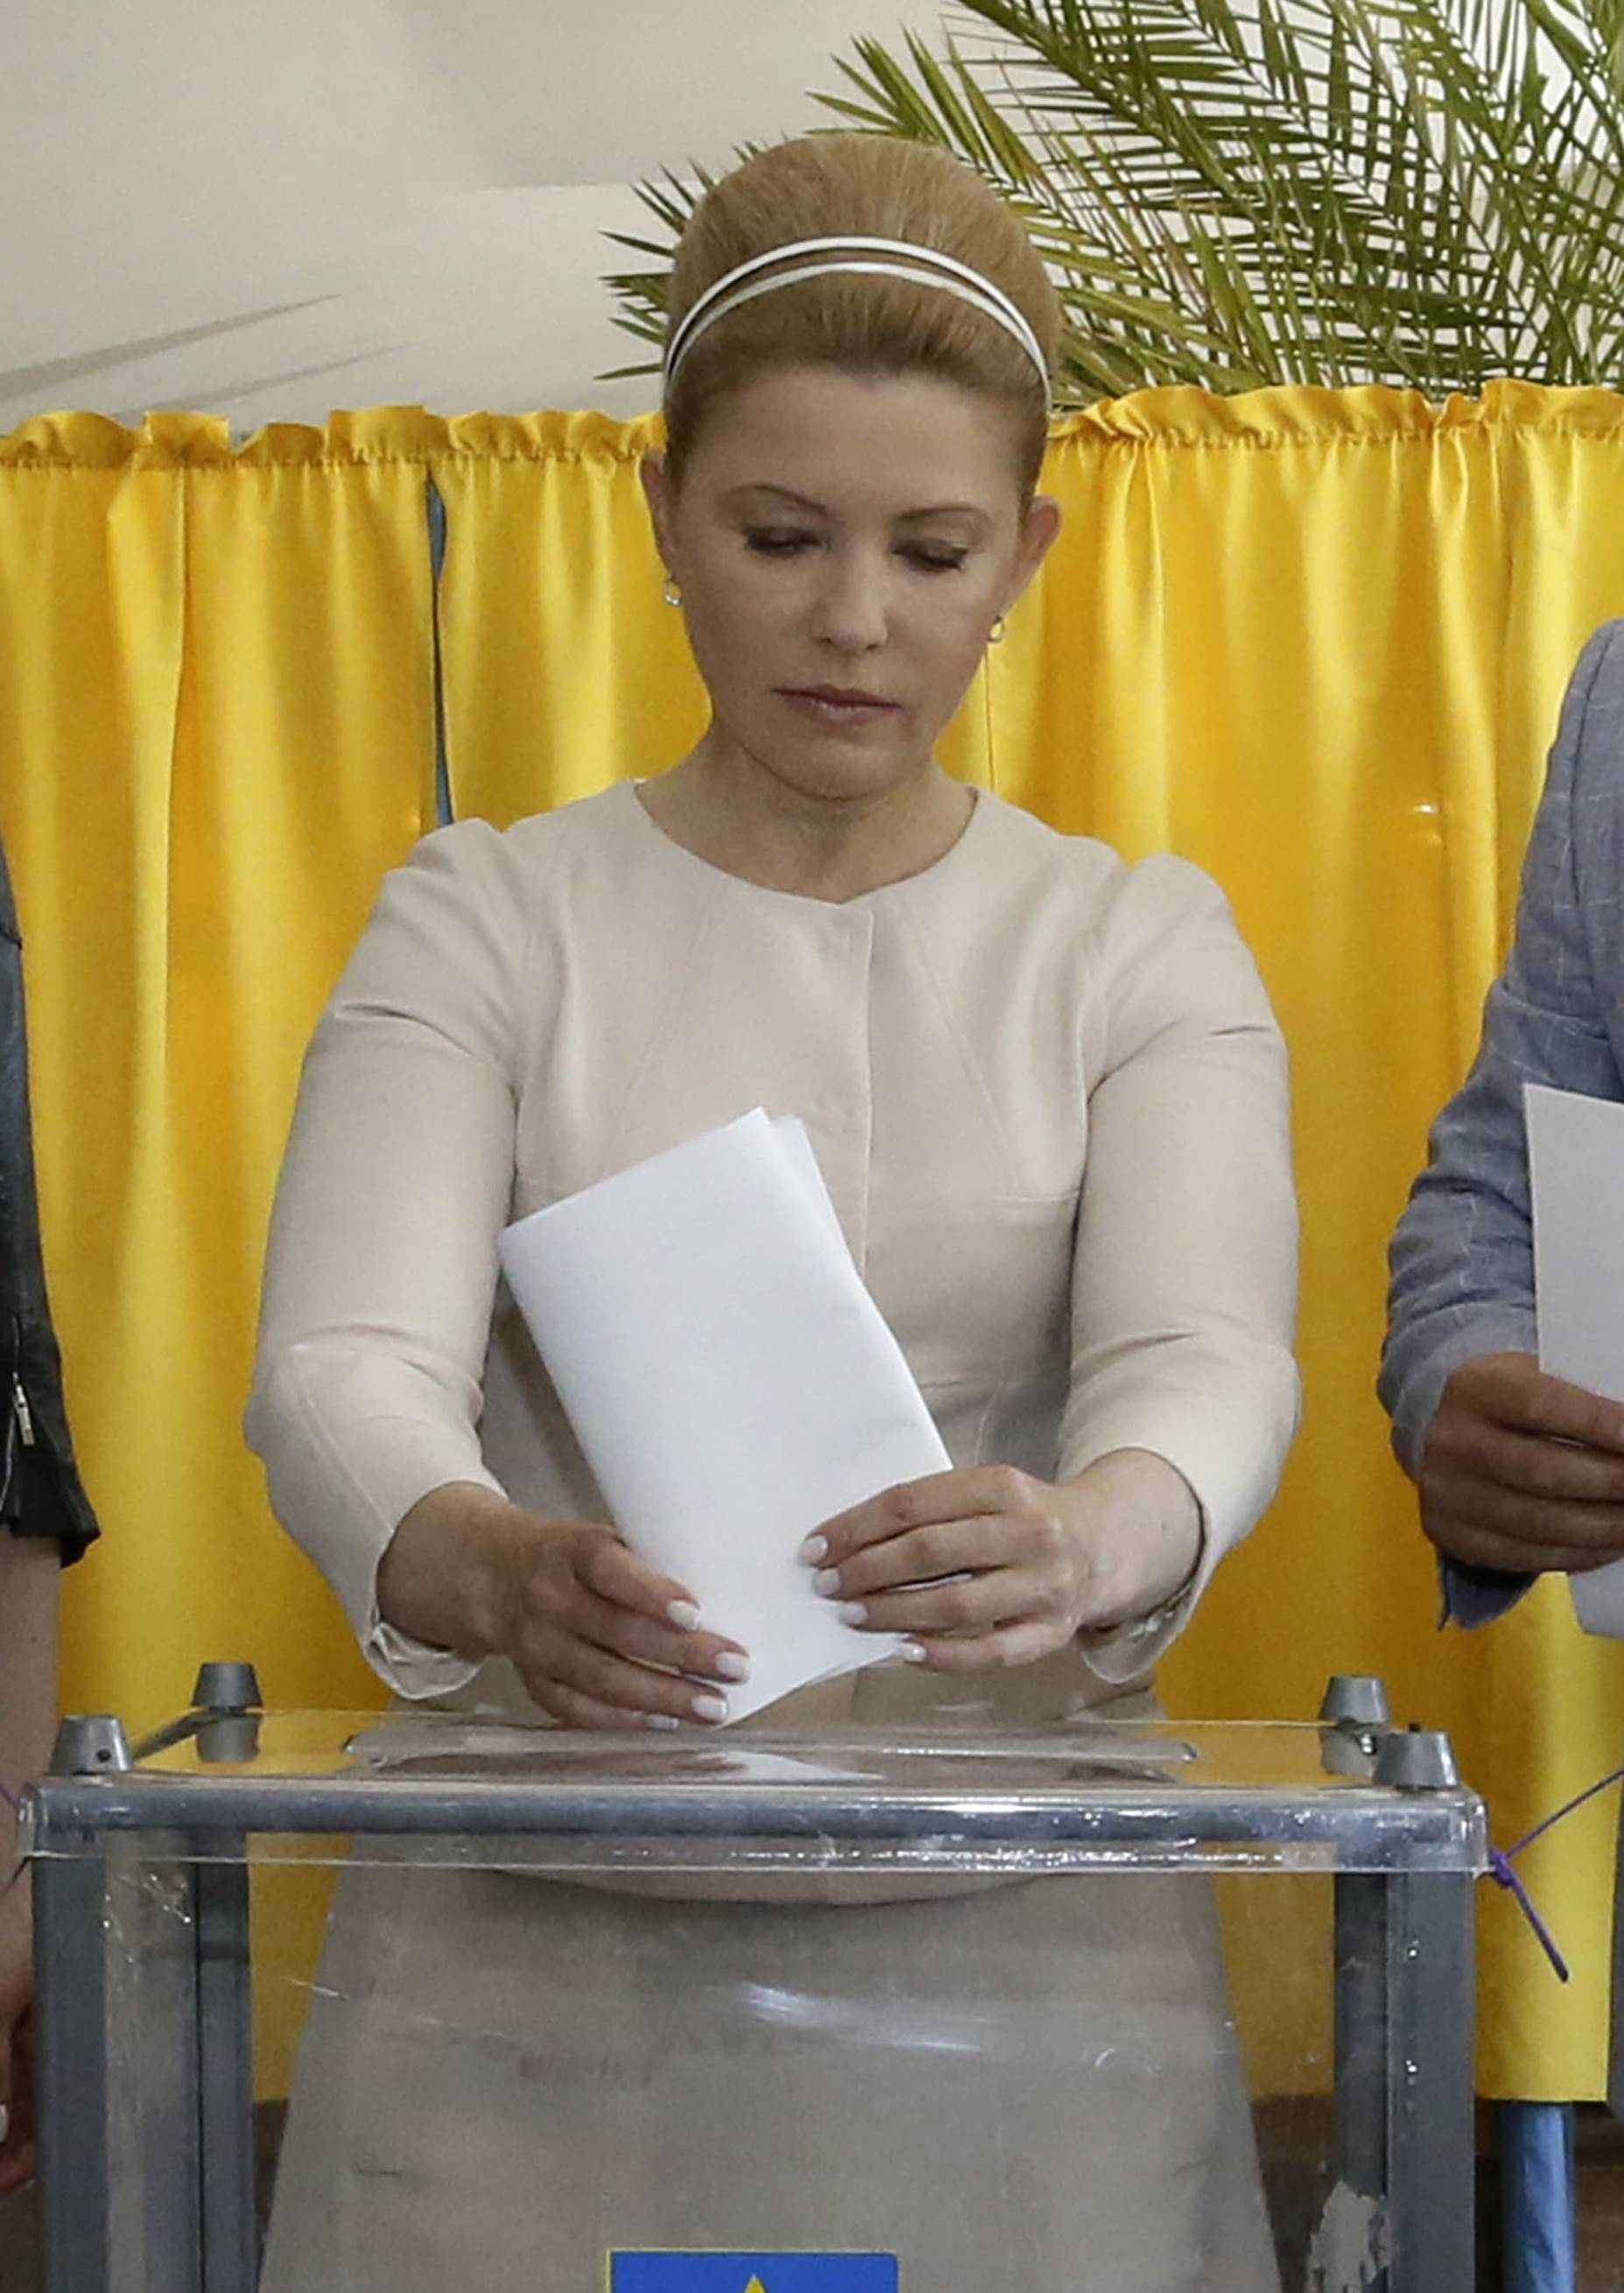 Ukraine's presidential candidate Yulia Tymoshenko casts her ballot at a polling station during the presidential election in Dnipropetrovsk, Ukraine, Sunday.